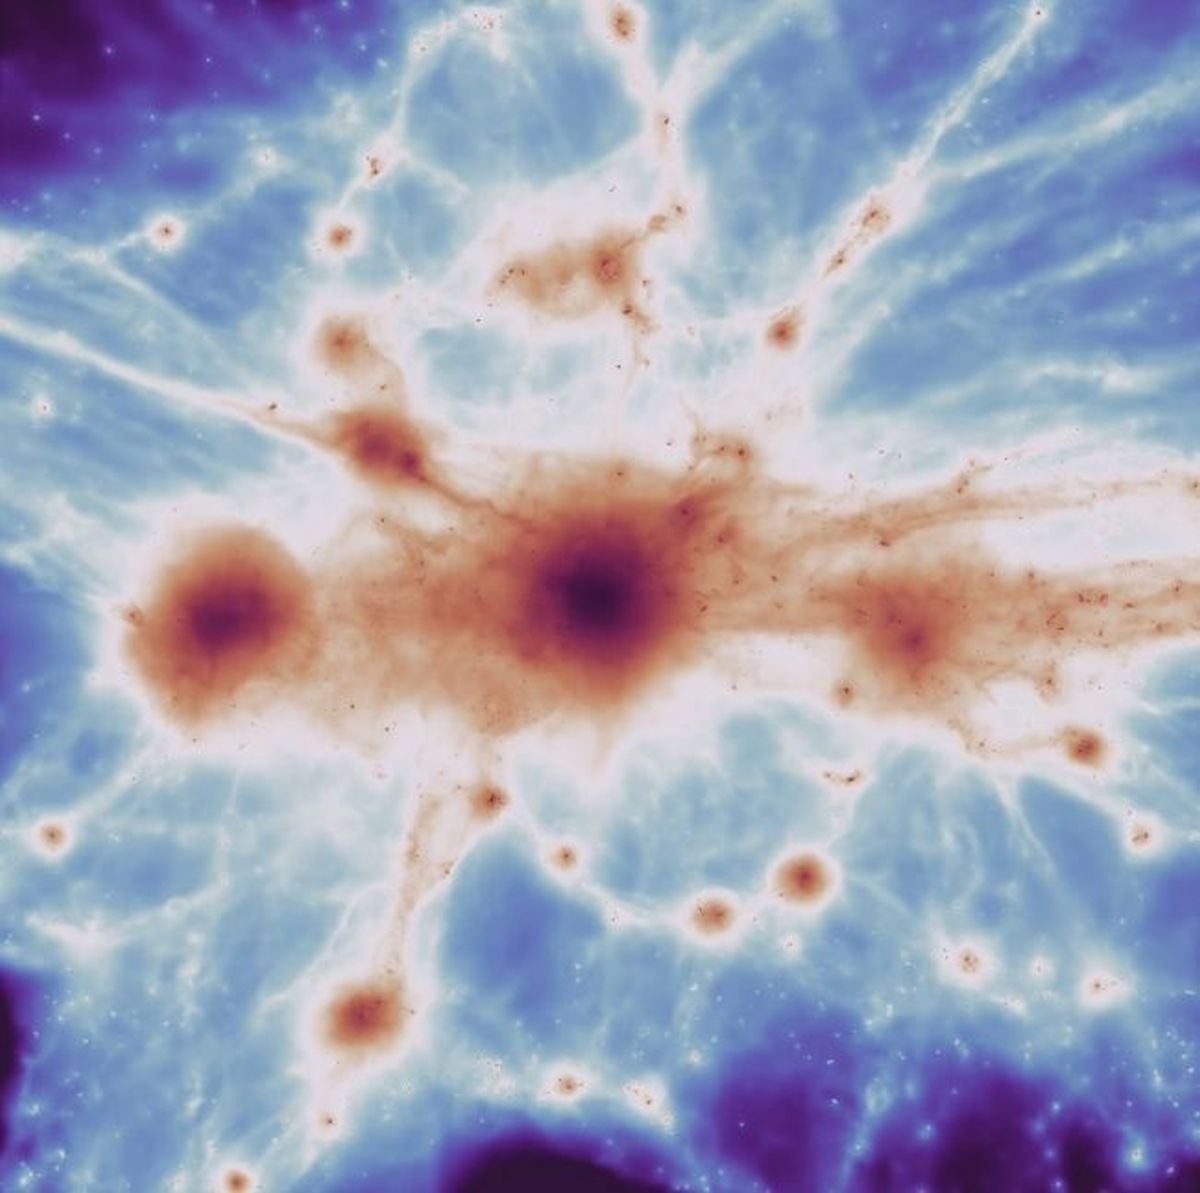 These results indicate that the Cosmic Web, which is thought to consist primarily of cold dark matter and some ordinary matter, forms the scaffolding of the cosmos, providing the framework for galaxies and clusters to form and evolve.